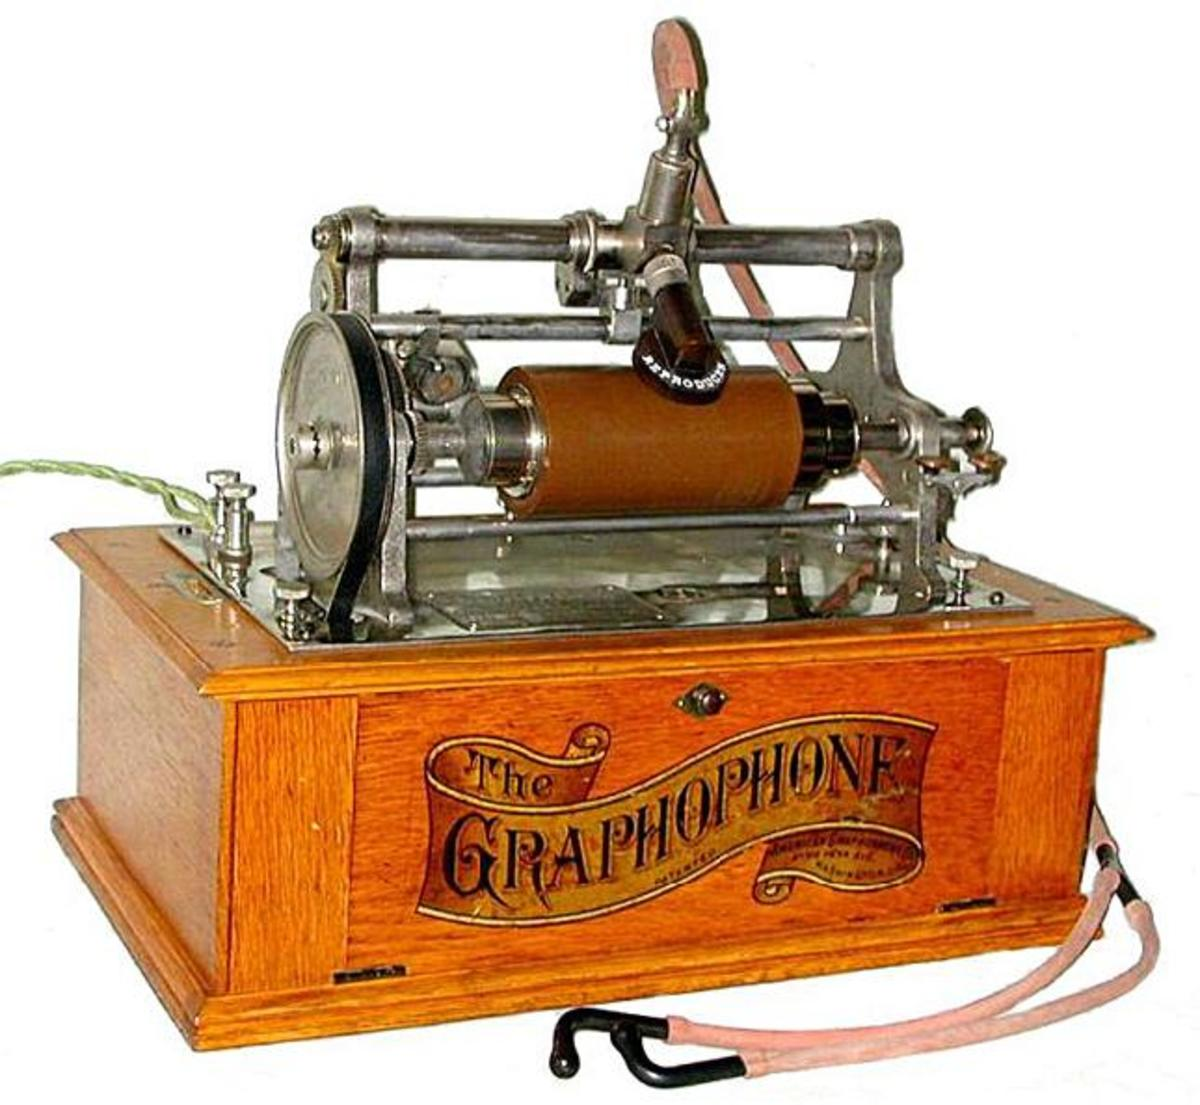 "The Graphophone playing a Bell-Tainter 6"" x 1-5/16"" ozocerite wax cylinder, as used on the early treadle machines."